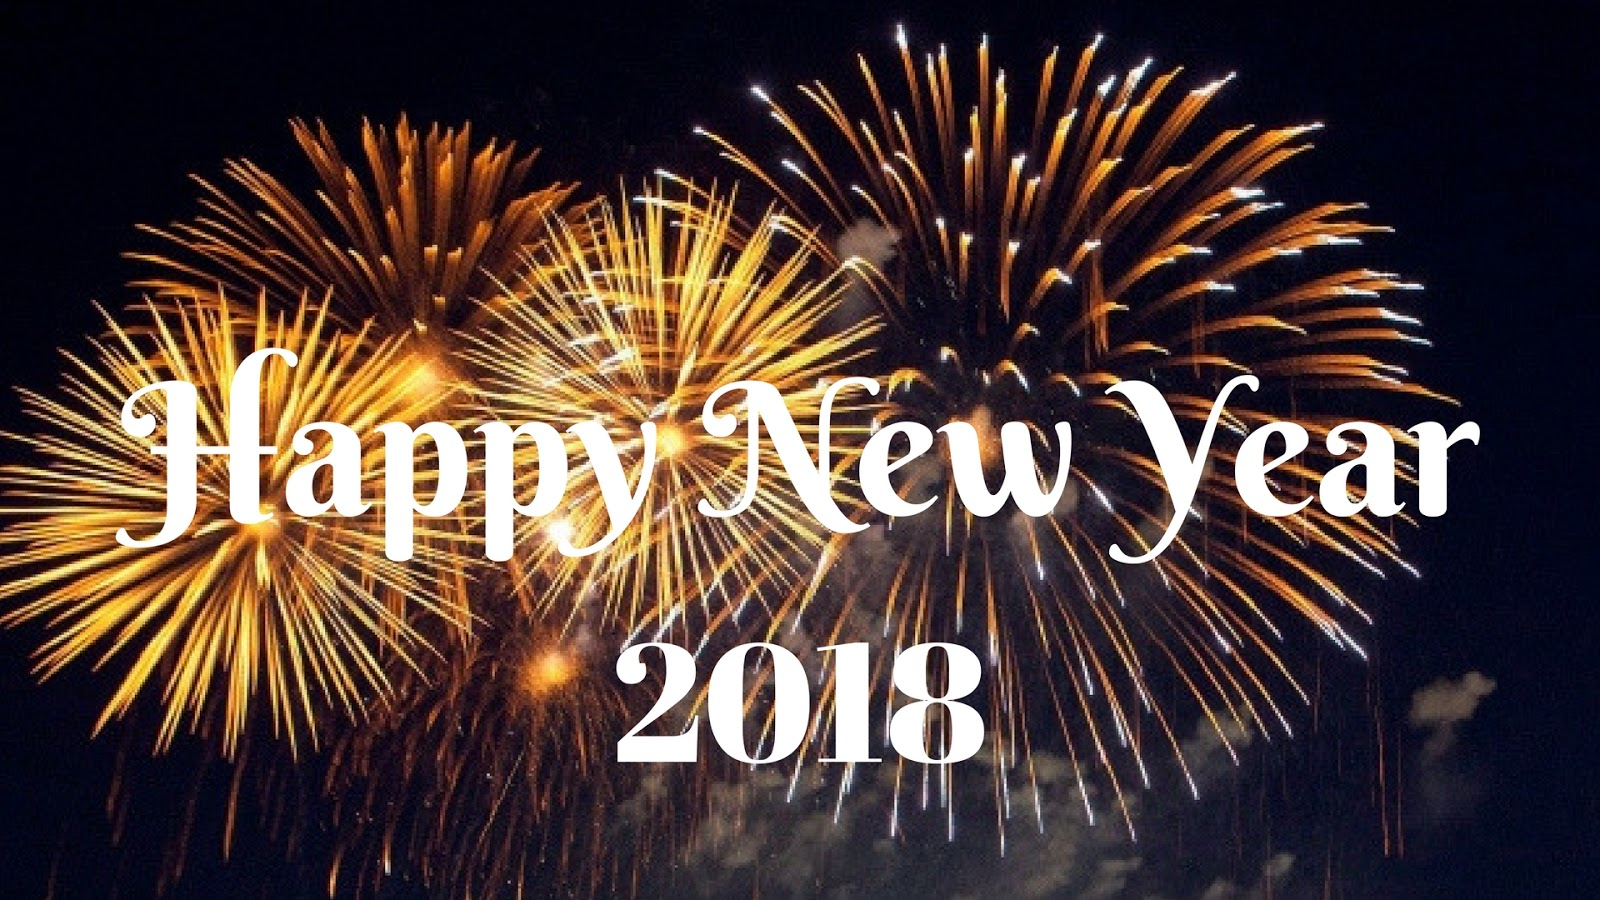 happy new year 2018 hd wallpaper 5